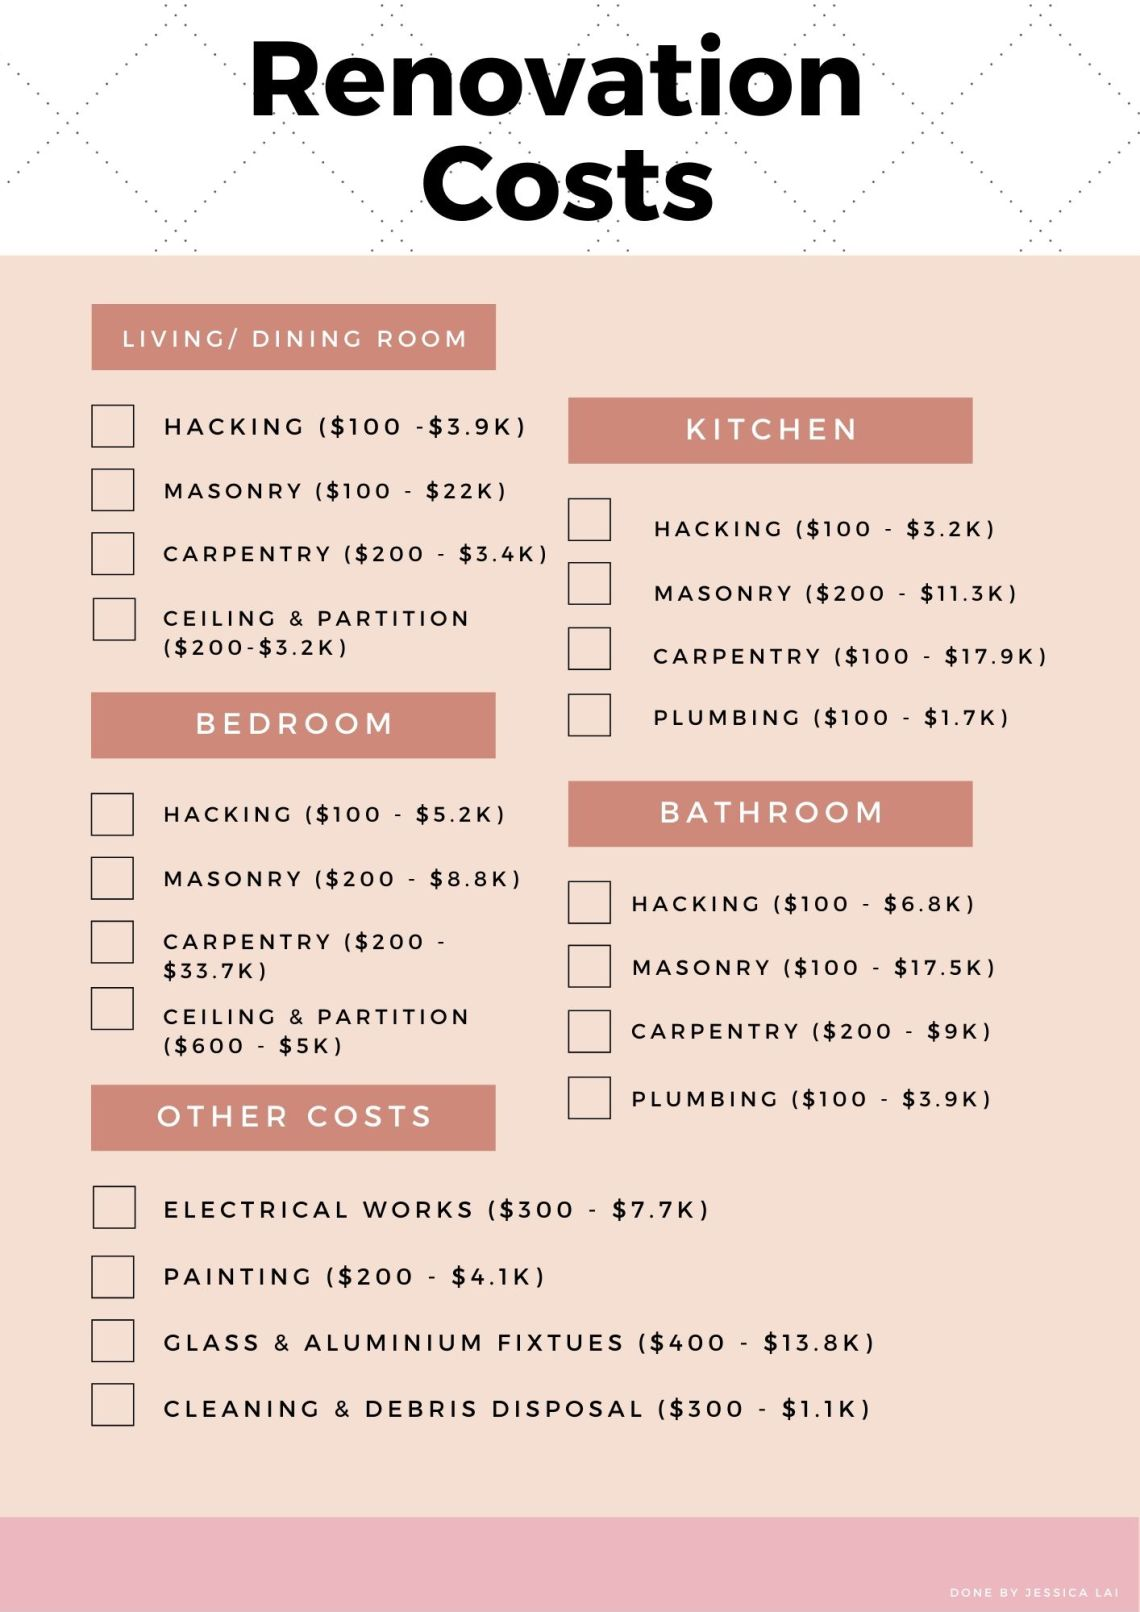 how much does renovation cost in singapore checklist